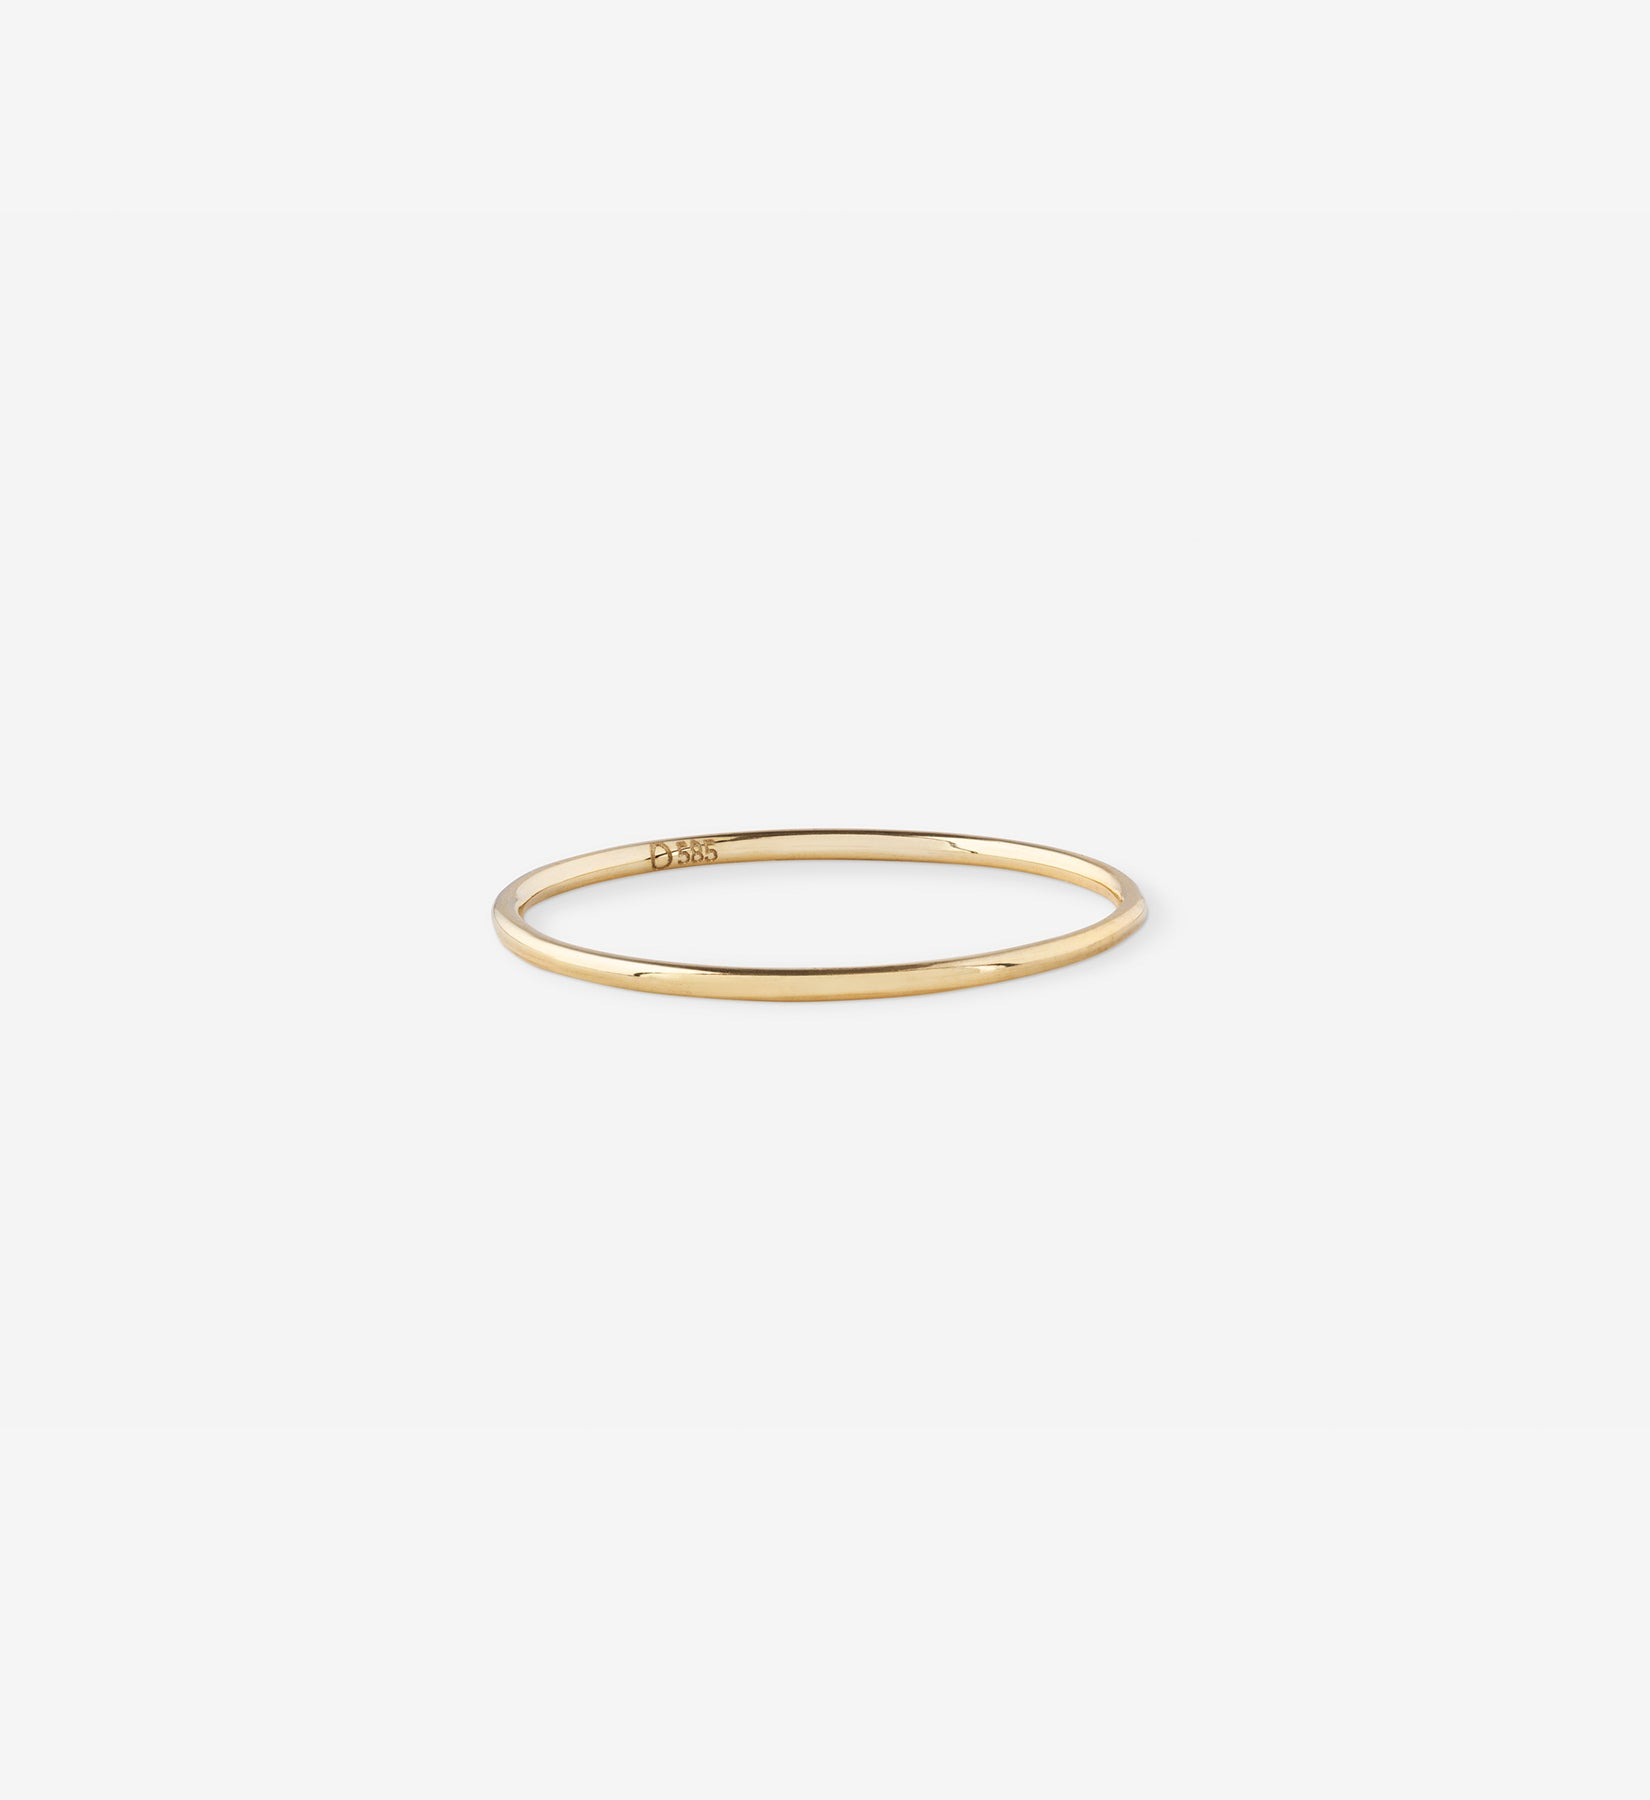 Petite Stacking Ring in 14K Gold